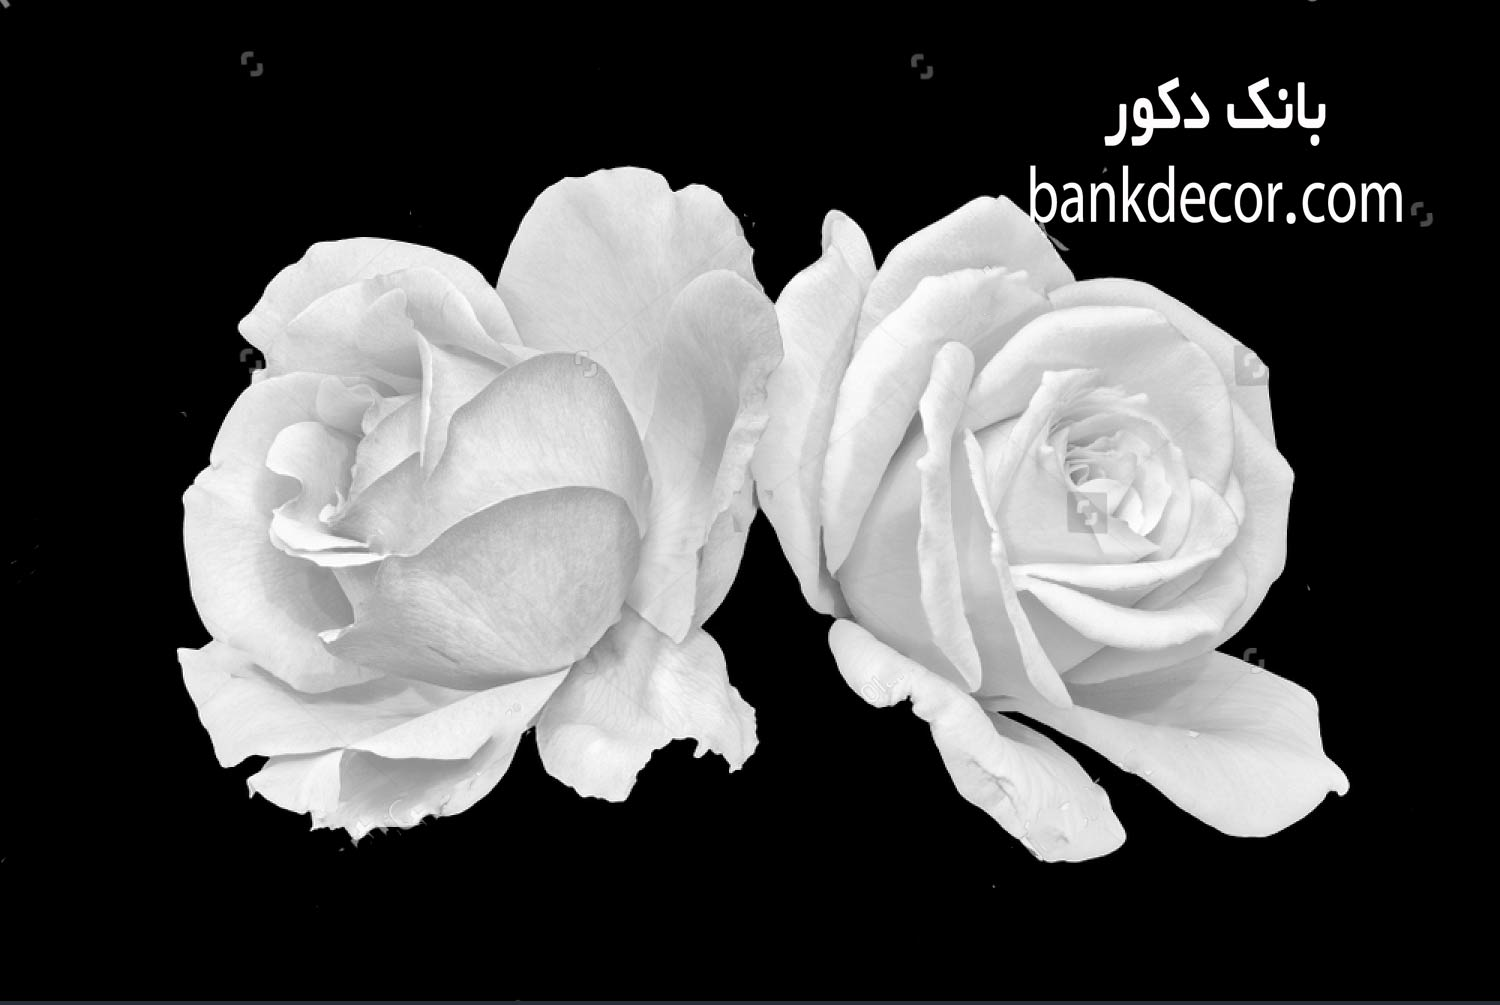 stock-photo-monochrome-black-and-white-fine-art-still-life-bright-floral-macro-of-a-pair-of-white-open-rose-1187110843.jpg